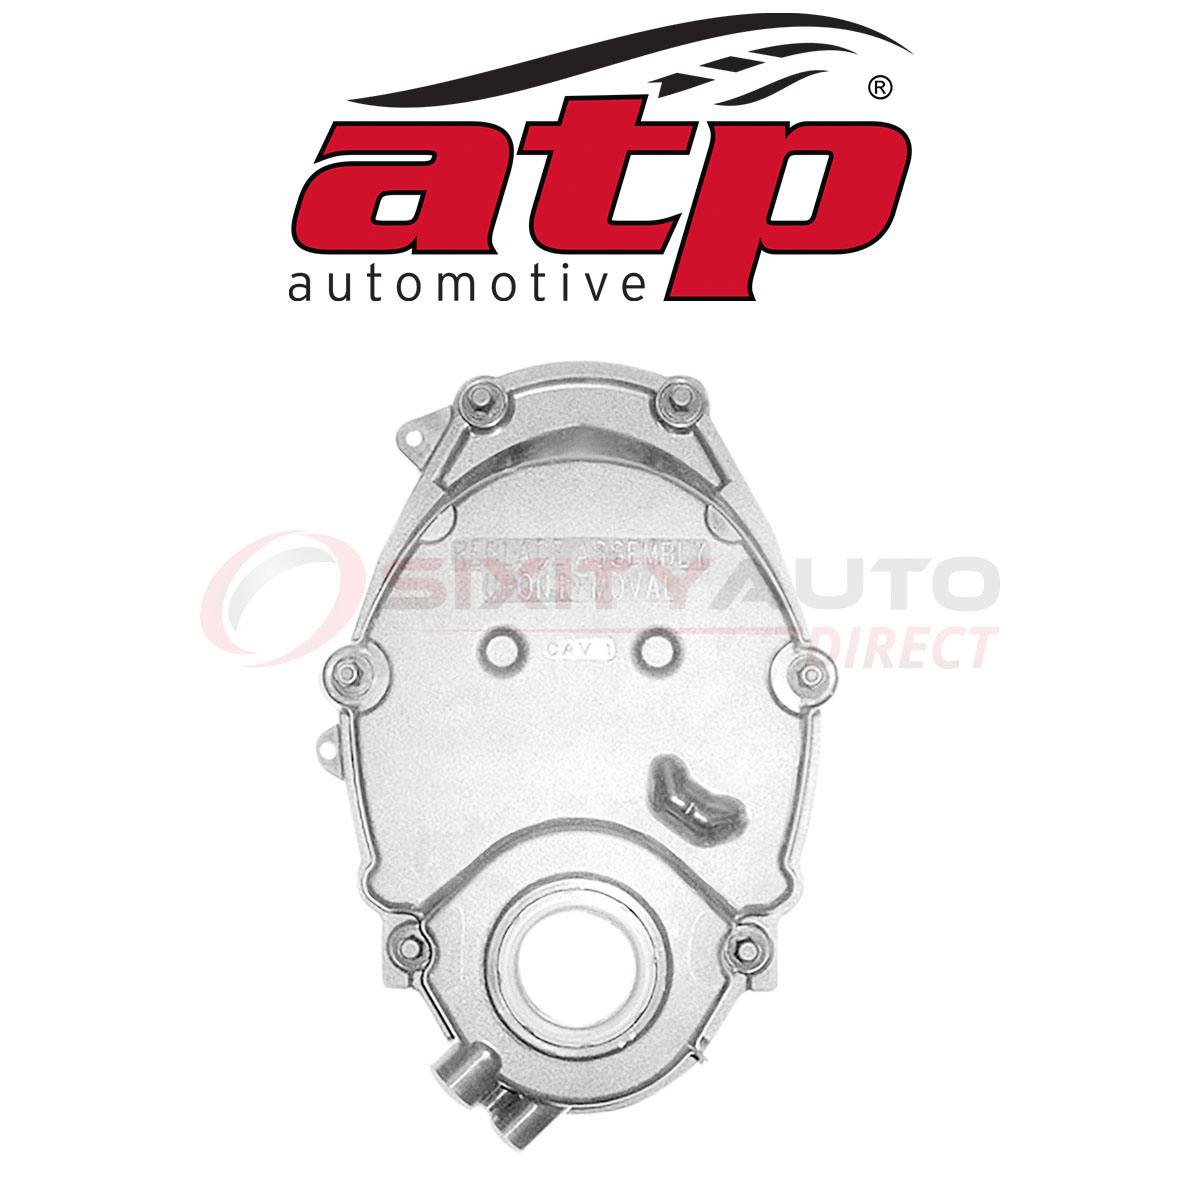 Engine fm ATP Automotive Timing Cover for 1996-1998 Chevrolet K1500 4.3L V6